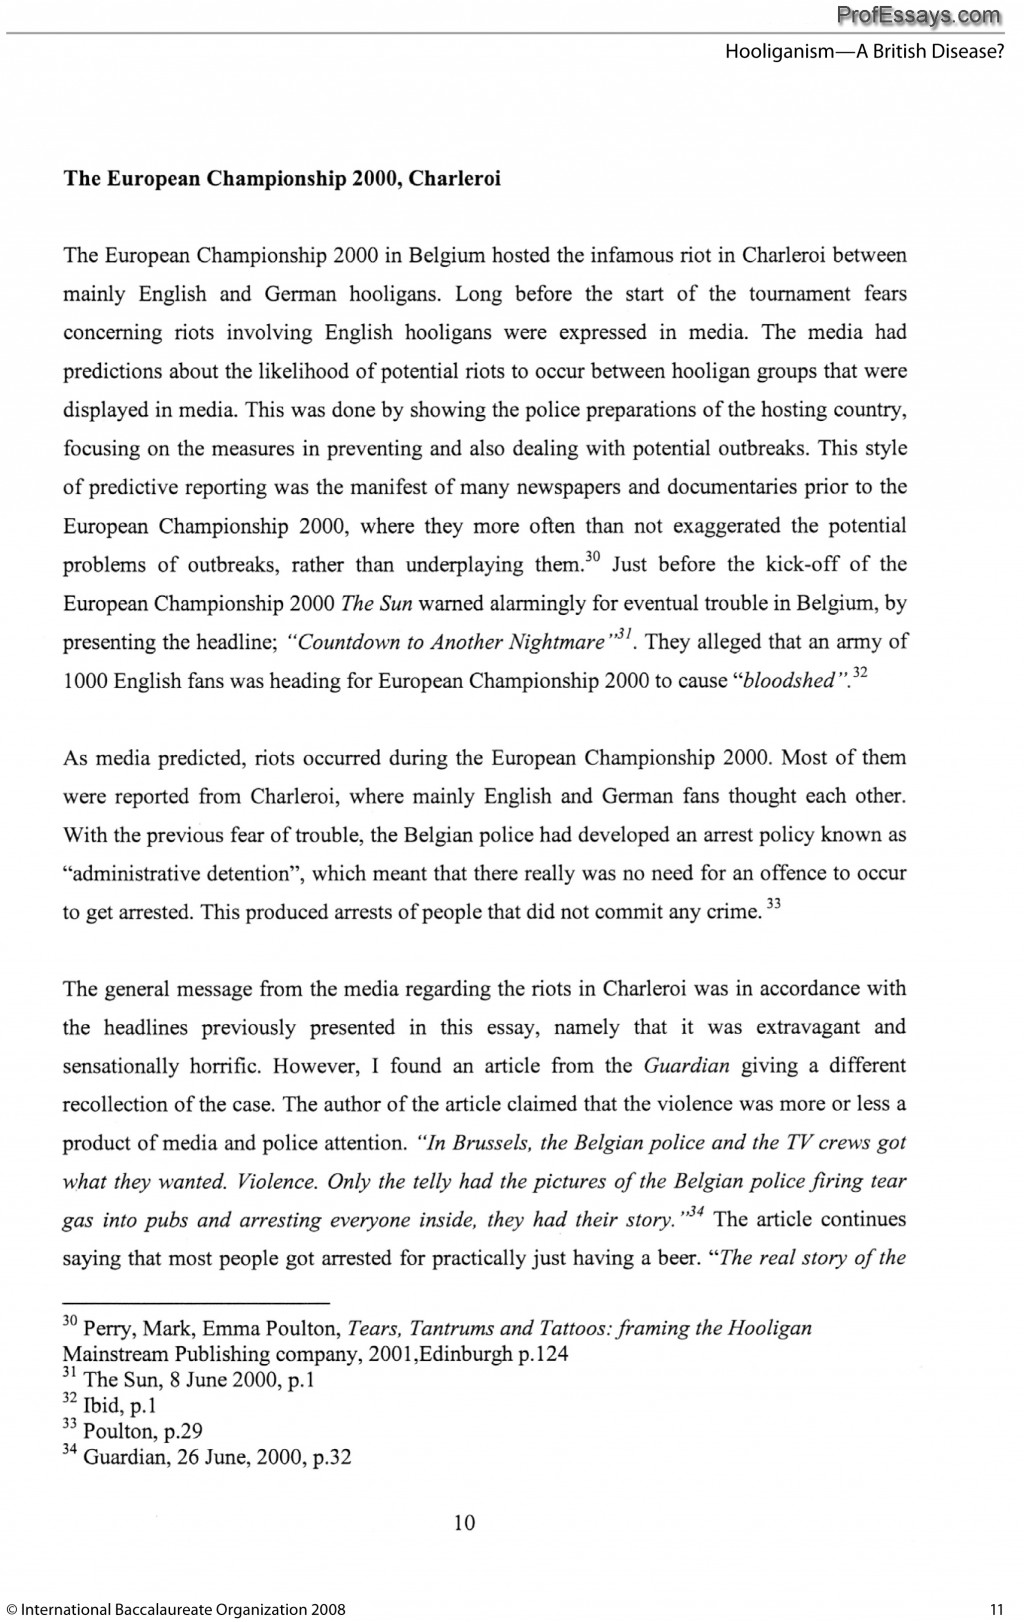 005 Art Essay Examples Example Ib Extended Free Formidable Conclusion School A2 Large